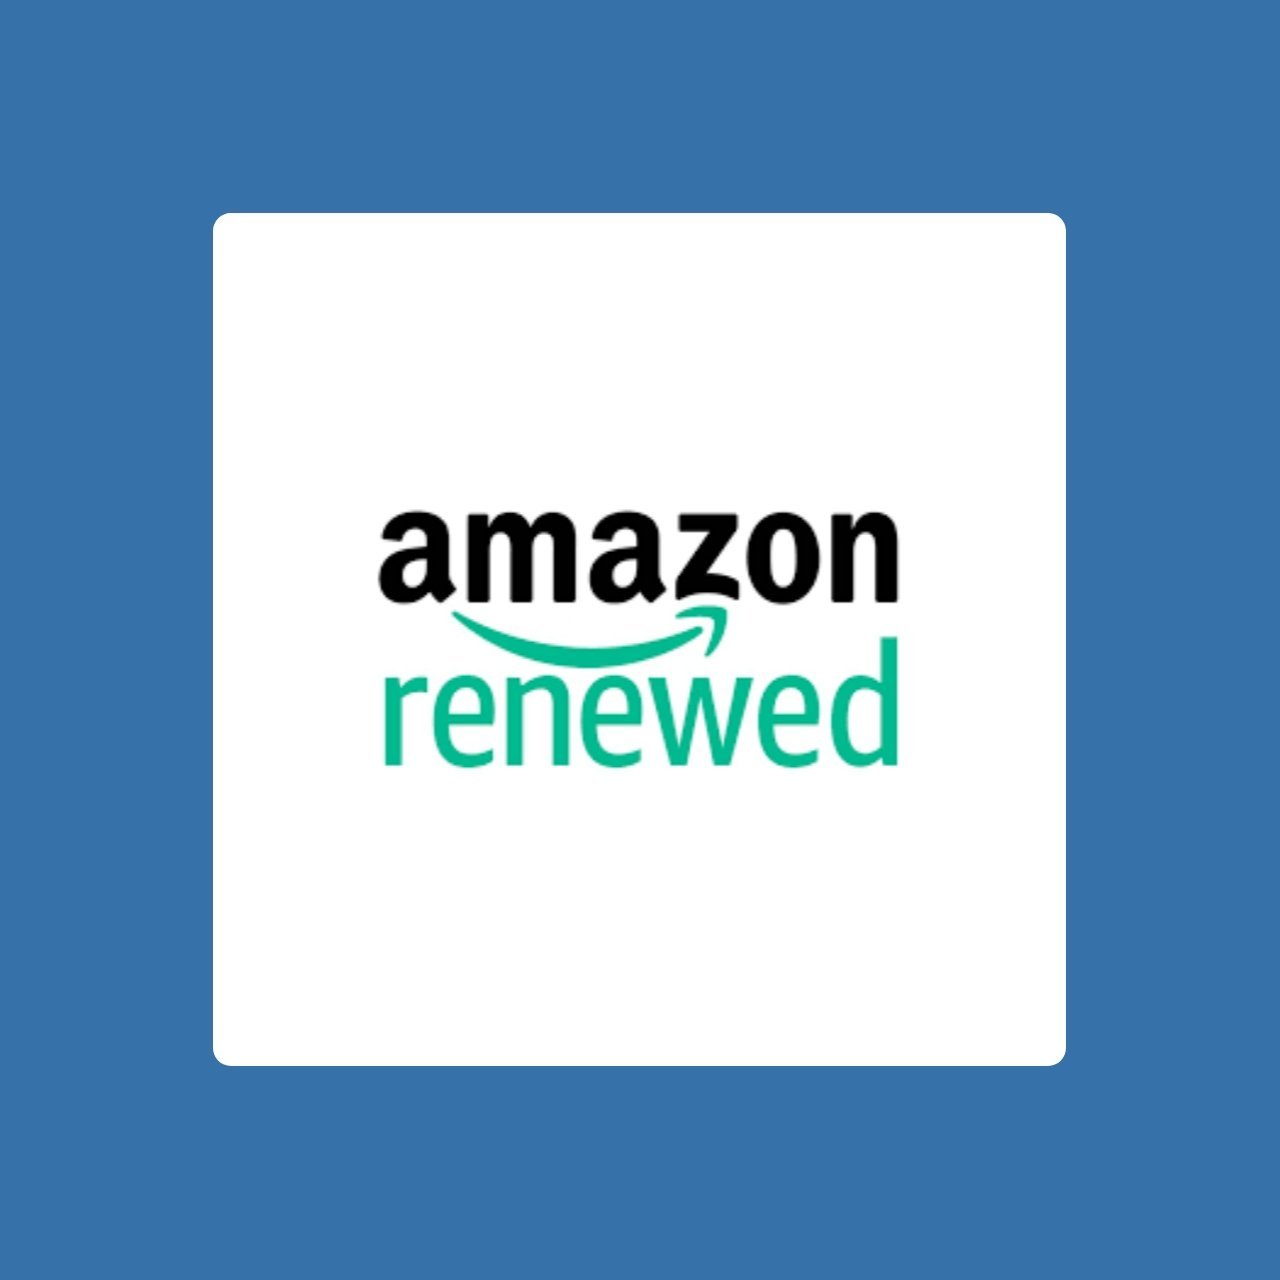 Certified Refurbished – Renewed on Amazon 2021